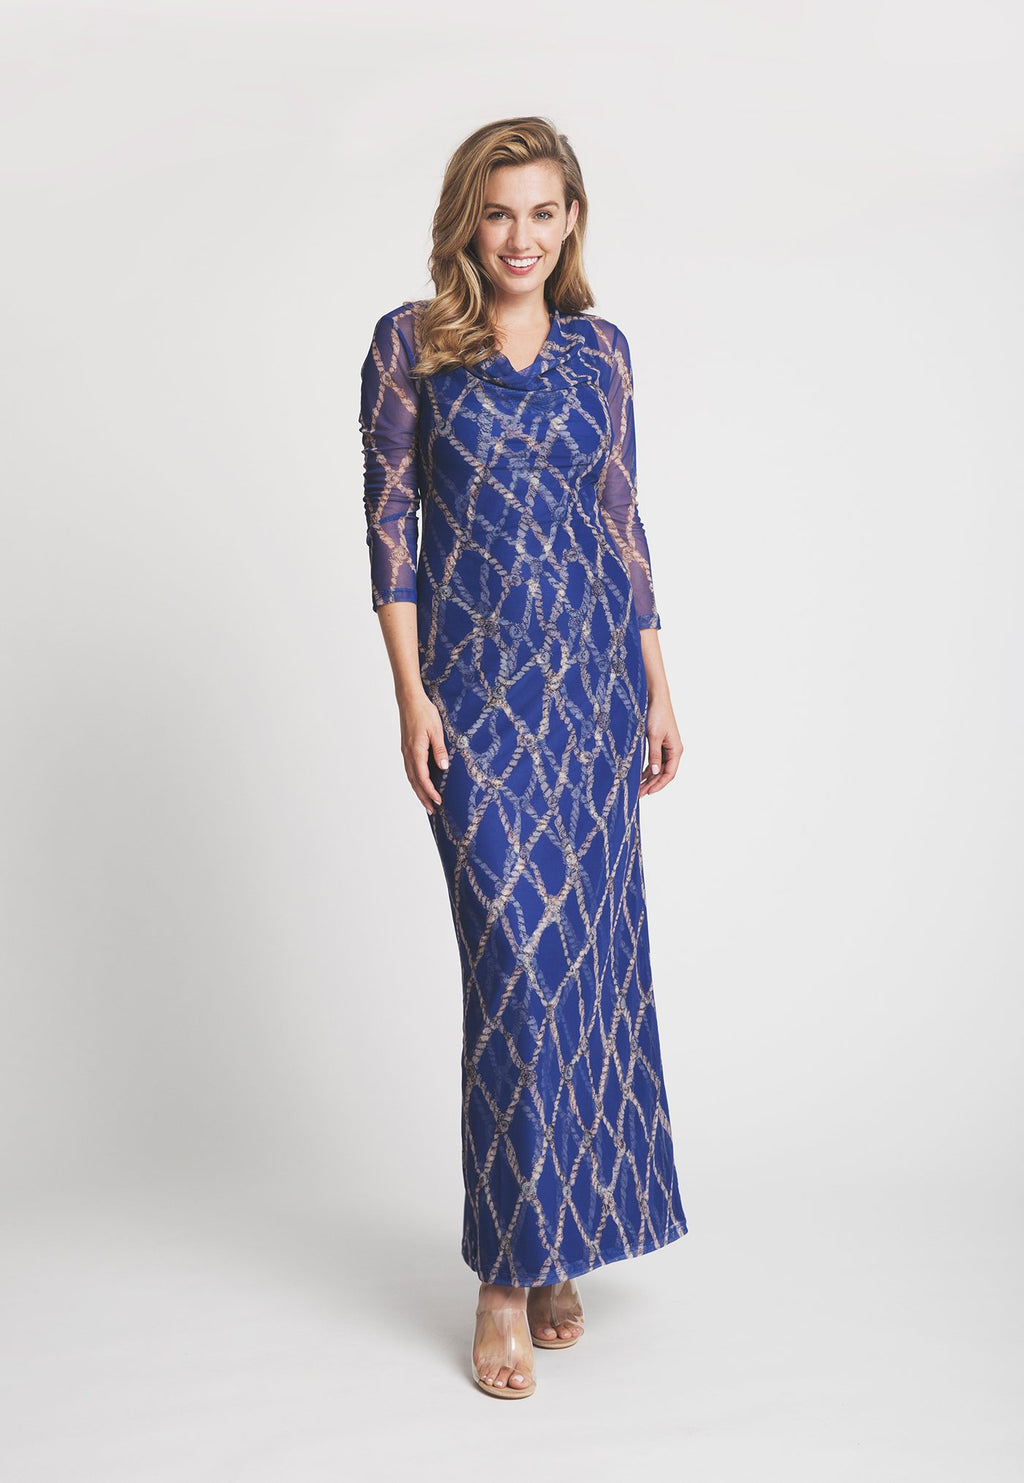 Louise Dress in Sea Rope front view